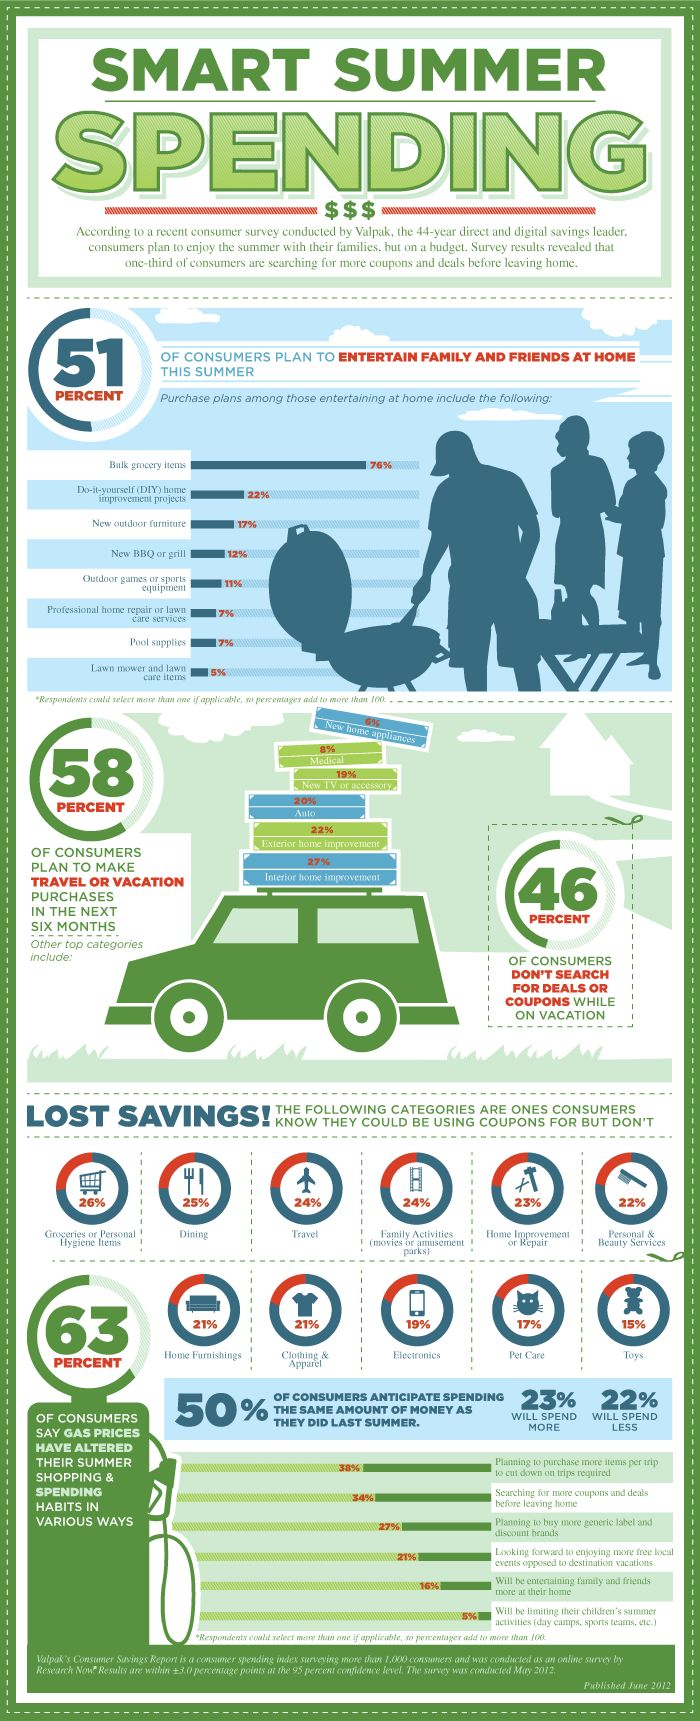 It's a scaled-back season for consumer spending. Only 23 percent of consumers plan to spend more this summer over last, down five percent from 2011, on purchases ranging from vacations to home improvement to electronics.Infographic Summer Spending, Spending Infographic, Smart Summer, Smart Spending,  Website, 2012 Saving, Summer Saving, Survey Infographic, Consumer Spending